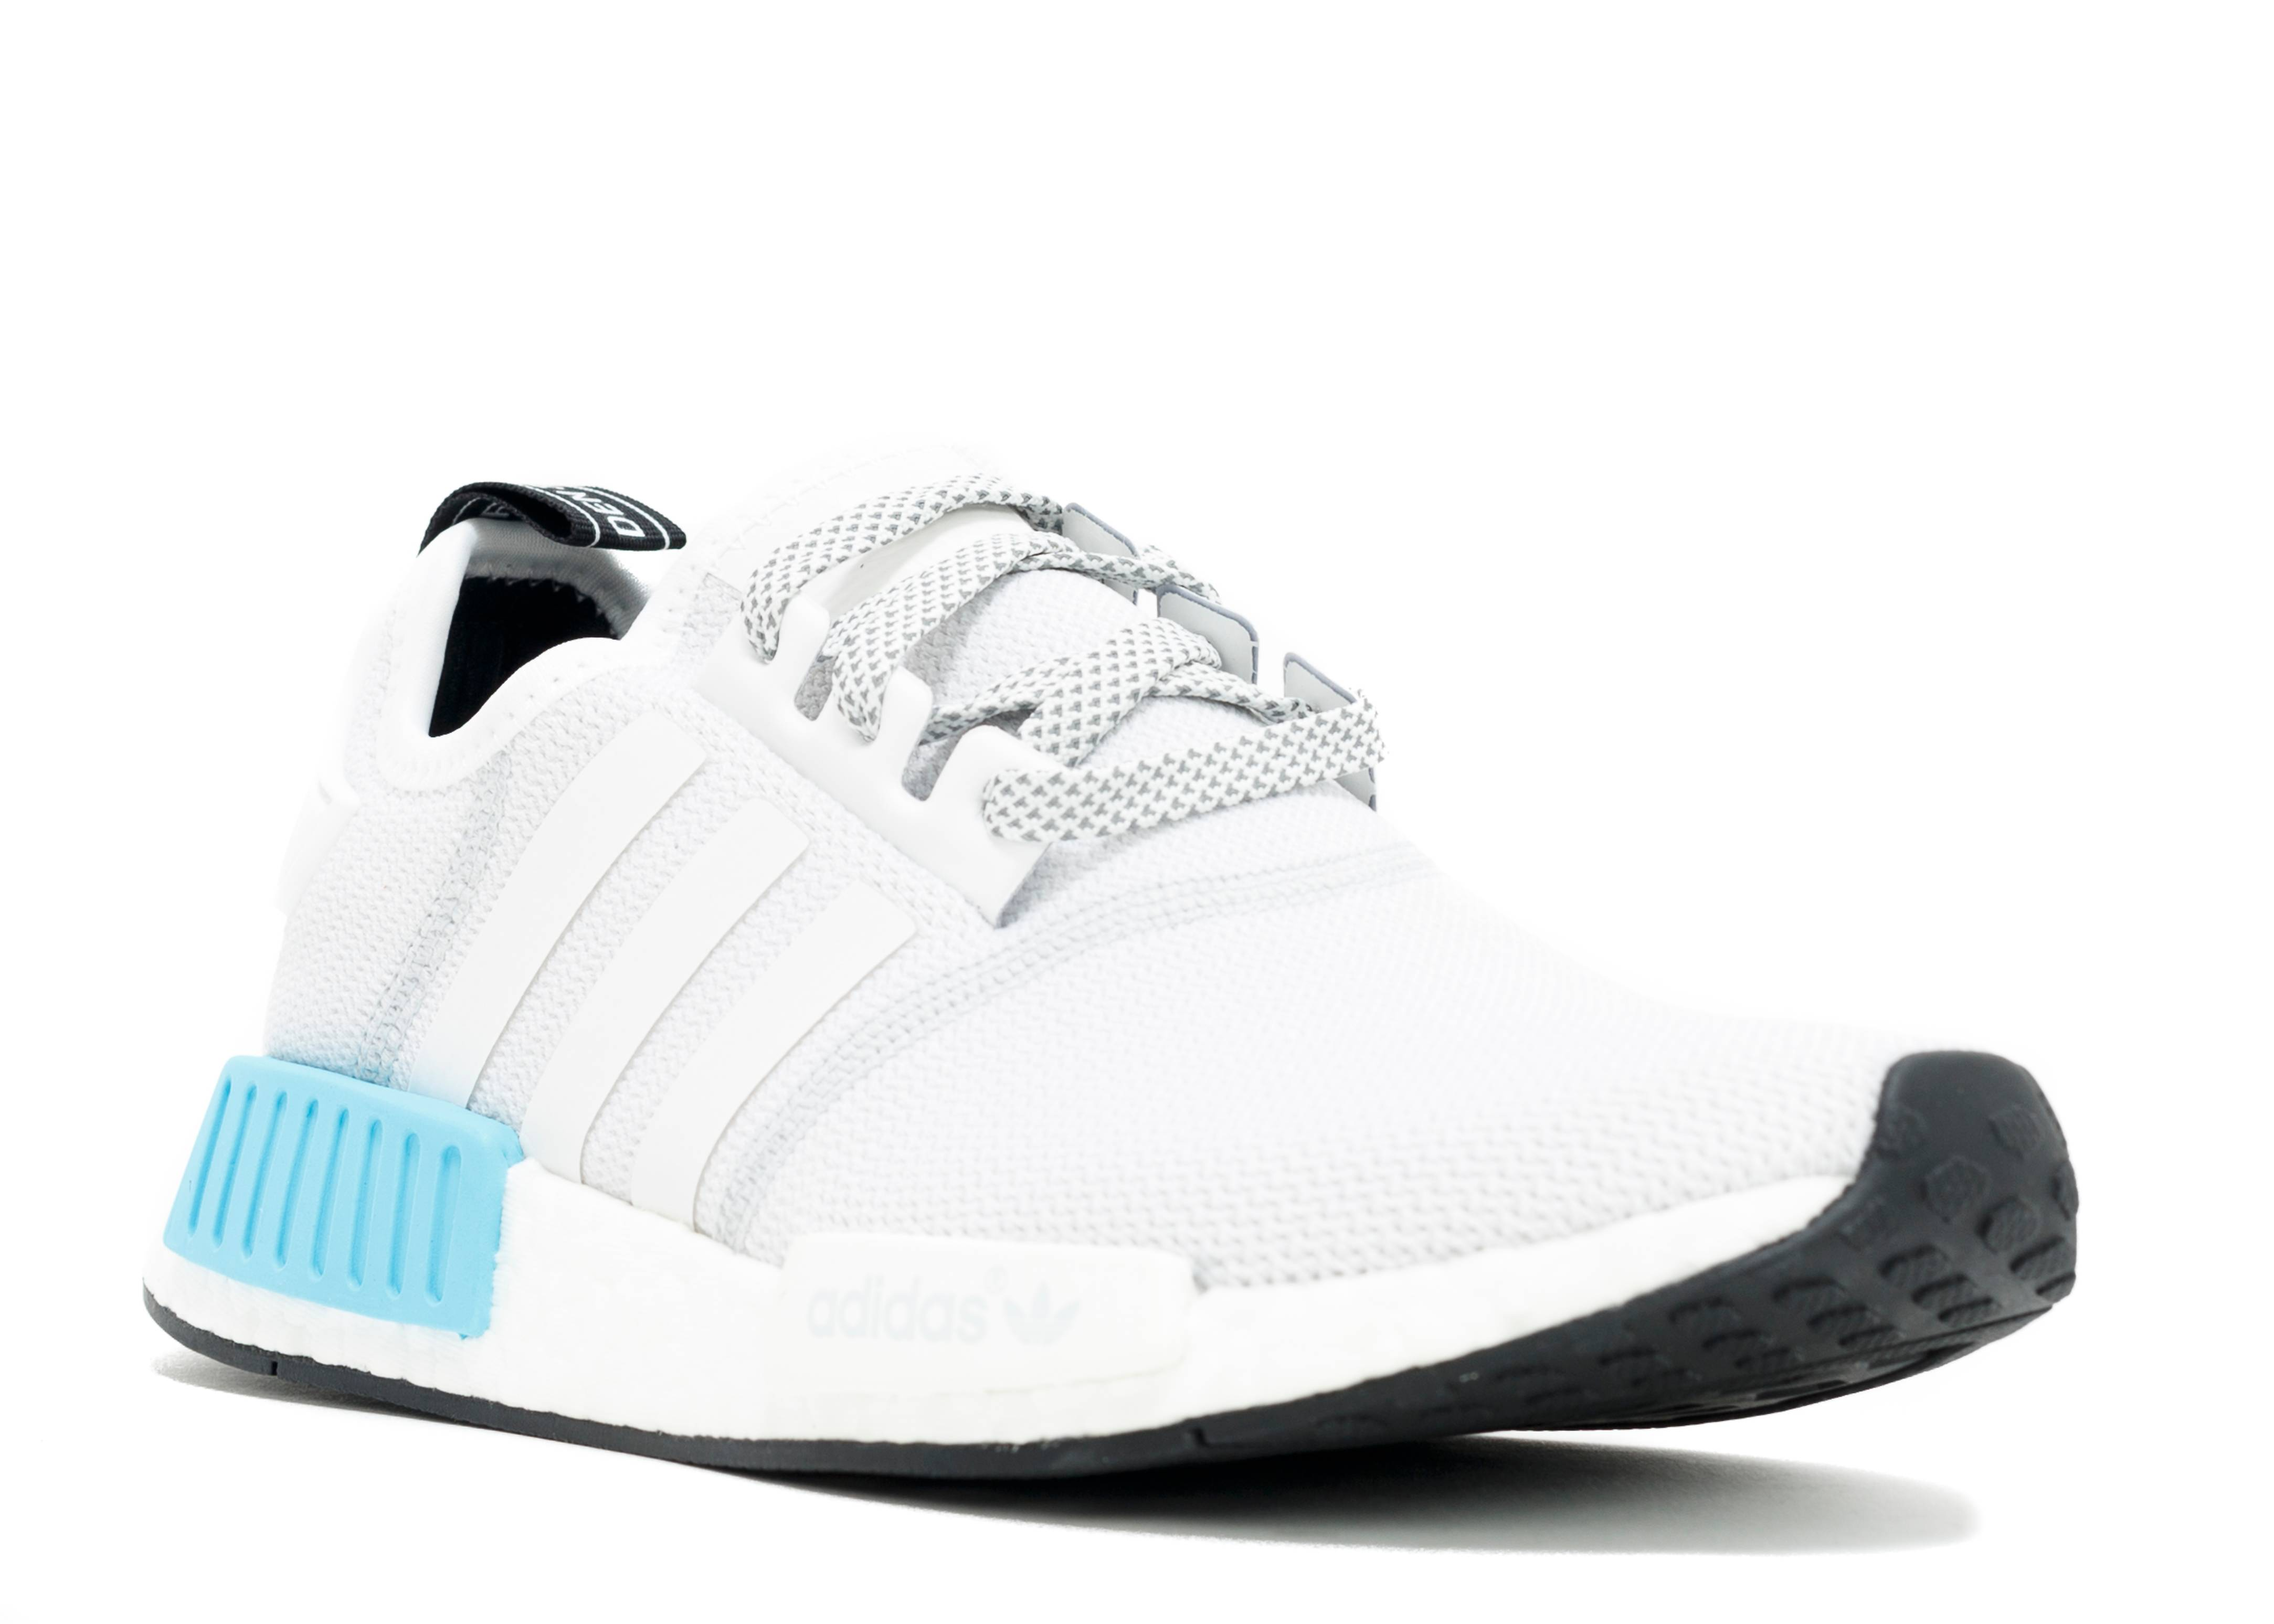 48a154487ddf9 Adidas Nmd Grey And Baby Blue kenmore-cleaning.co.uk